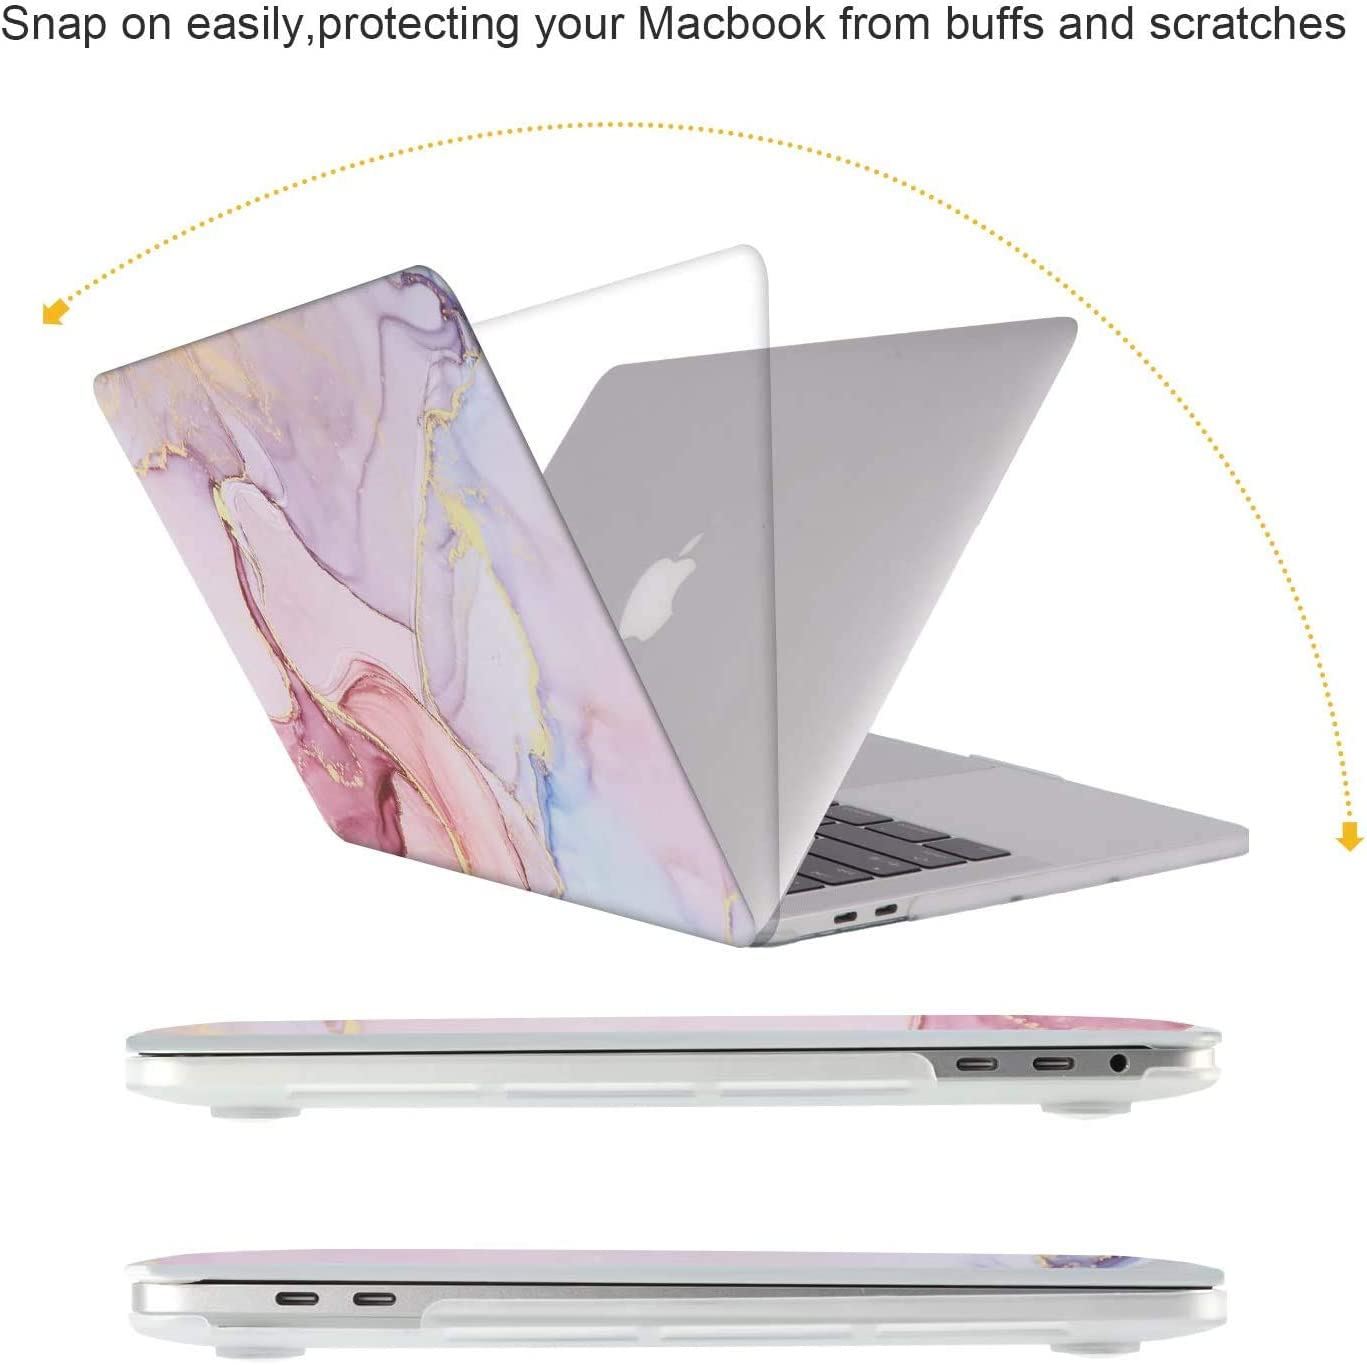 Plastic Hard Shell Case Protective Cover /& Keyboard Cover /& Screen Protector Only Compatible with New Macbook Pro 13 inch with Touch Bar /& Touch ID iCasso Macbook Pro 13 inch 2020 Release A2251 A2289 Creative Brain